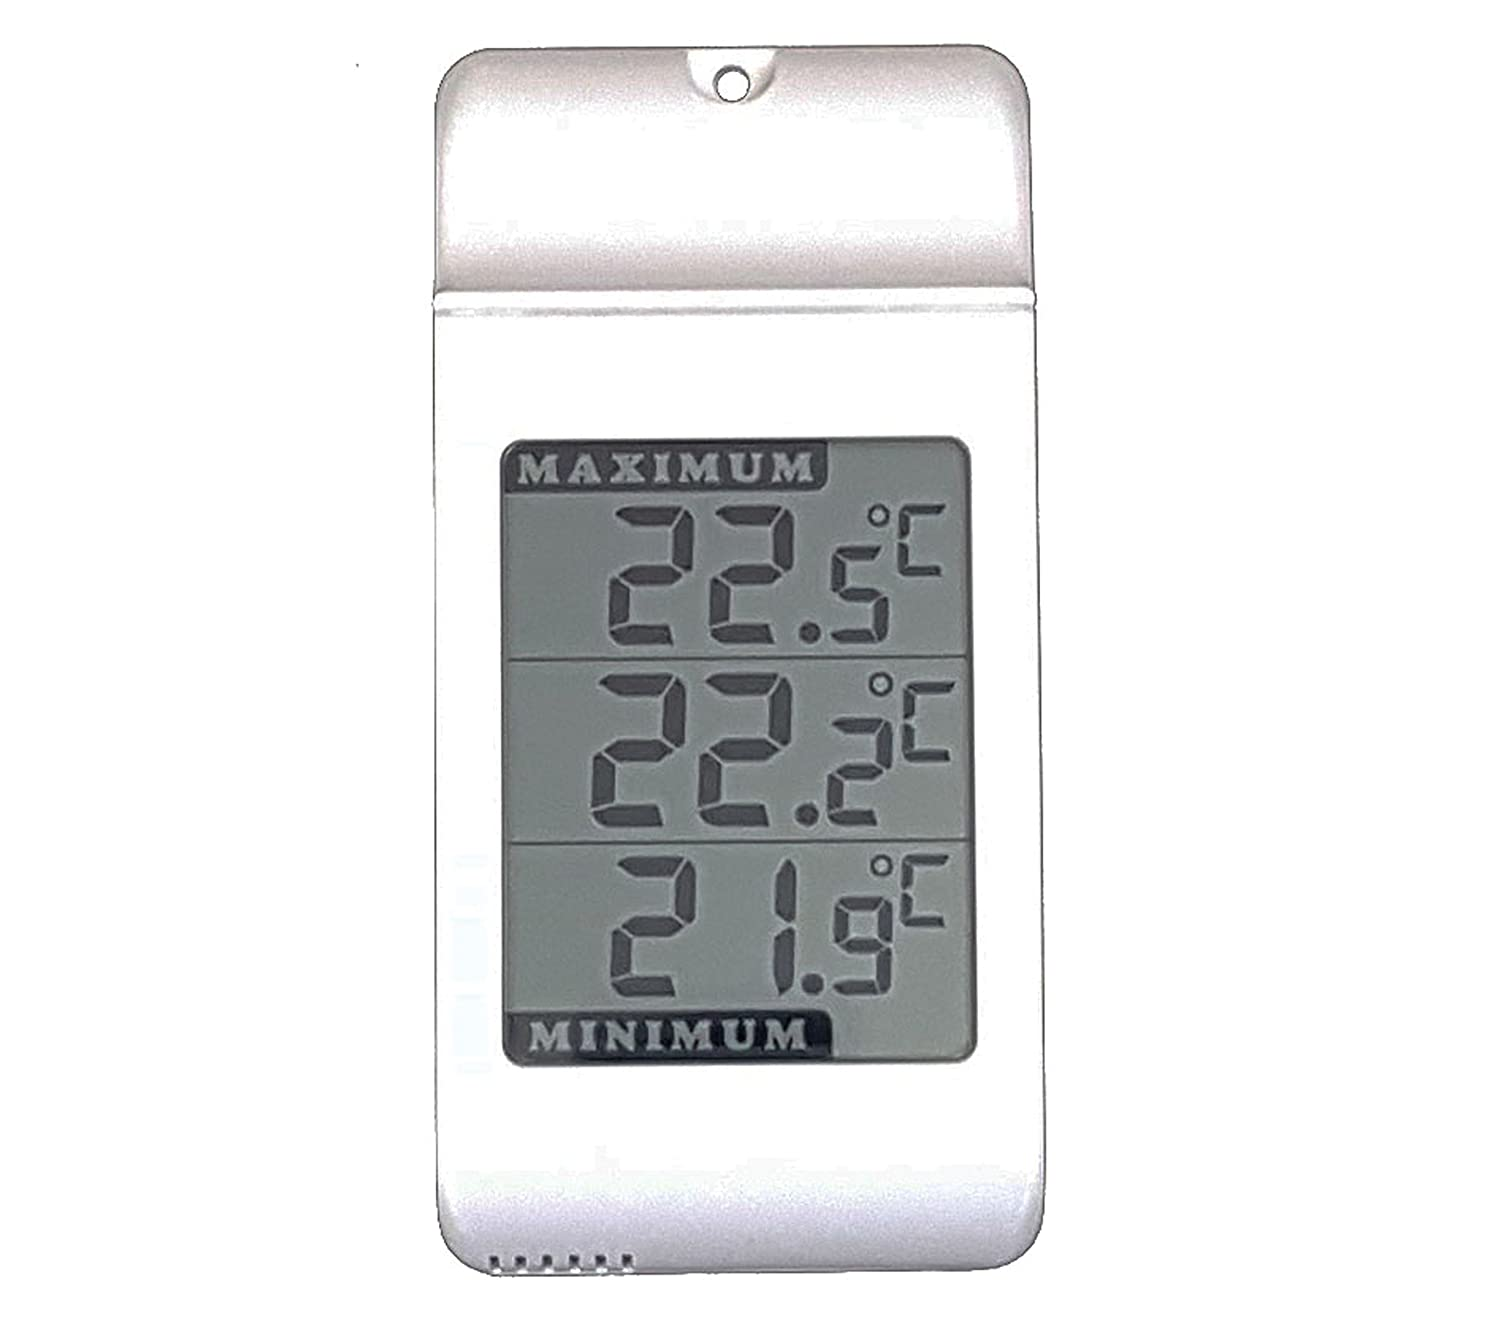 Digital Max Min wall Thermometer -Indoor Outdoor Garden Greenhouse Jumbo Display